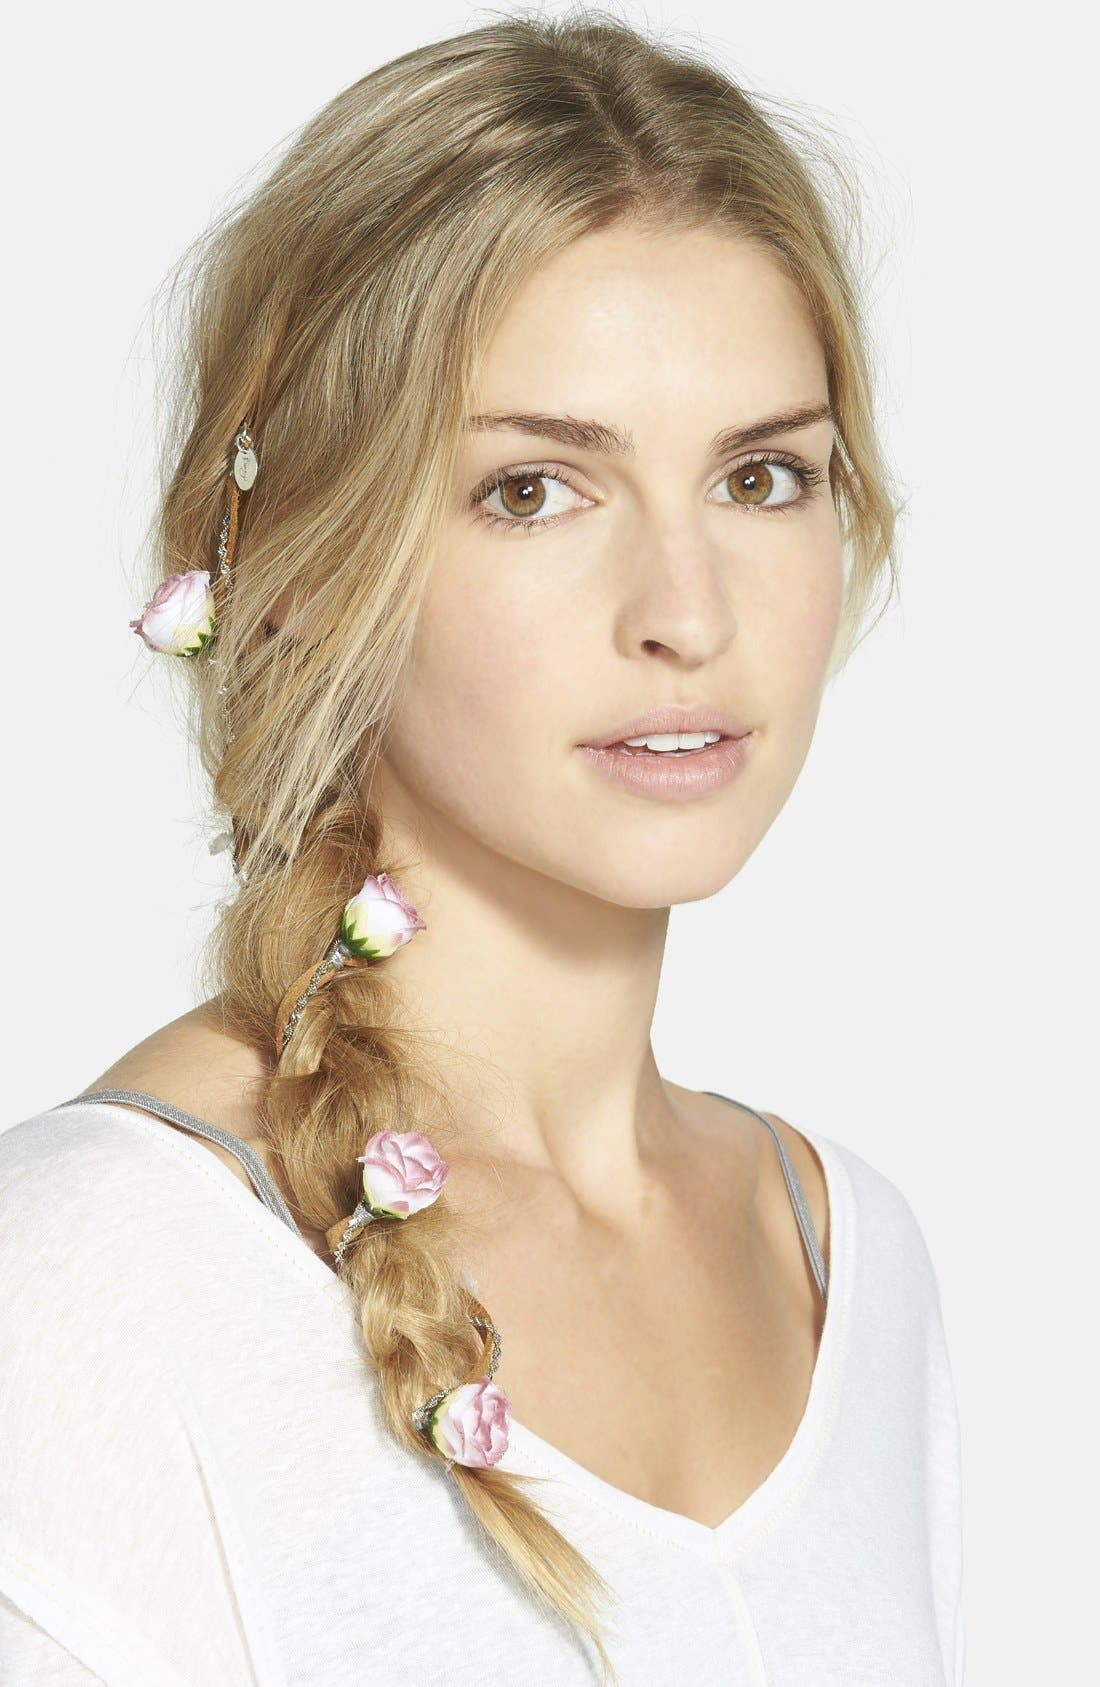 Alternate Image 1 Selected - Berry 'Rose Chain' Braid-In Hair Clip